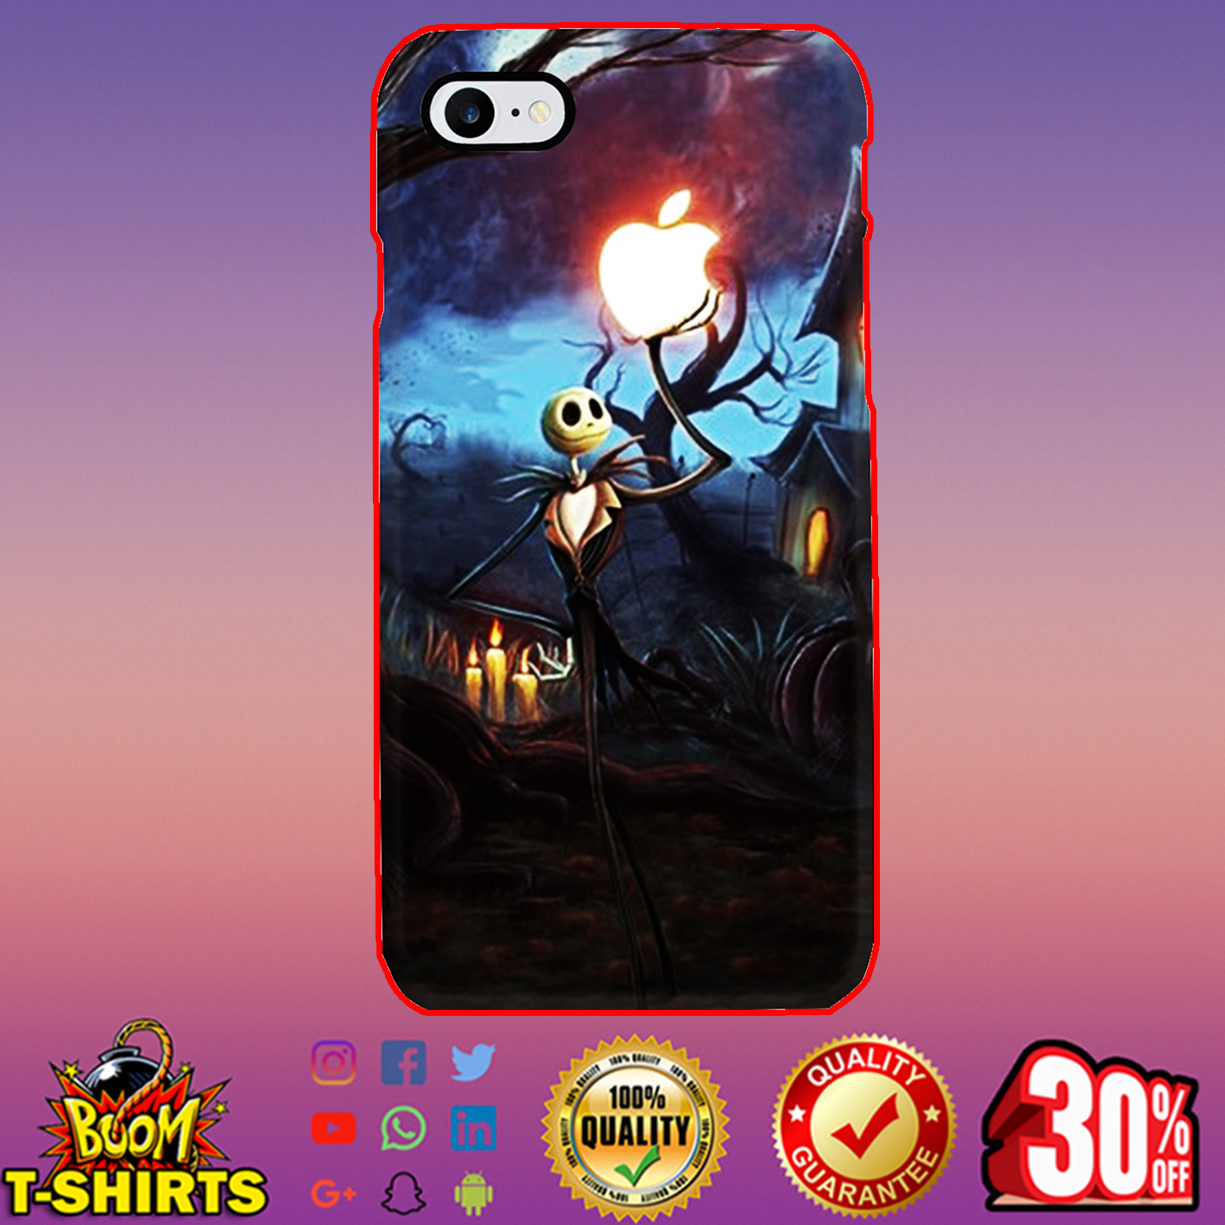 Jack Skellington holding Apple phone case - iphone 7 case